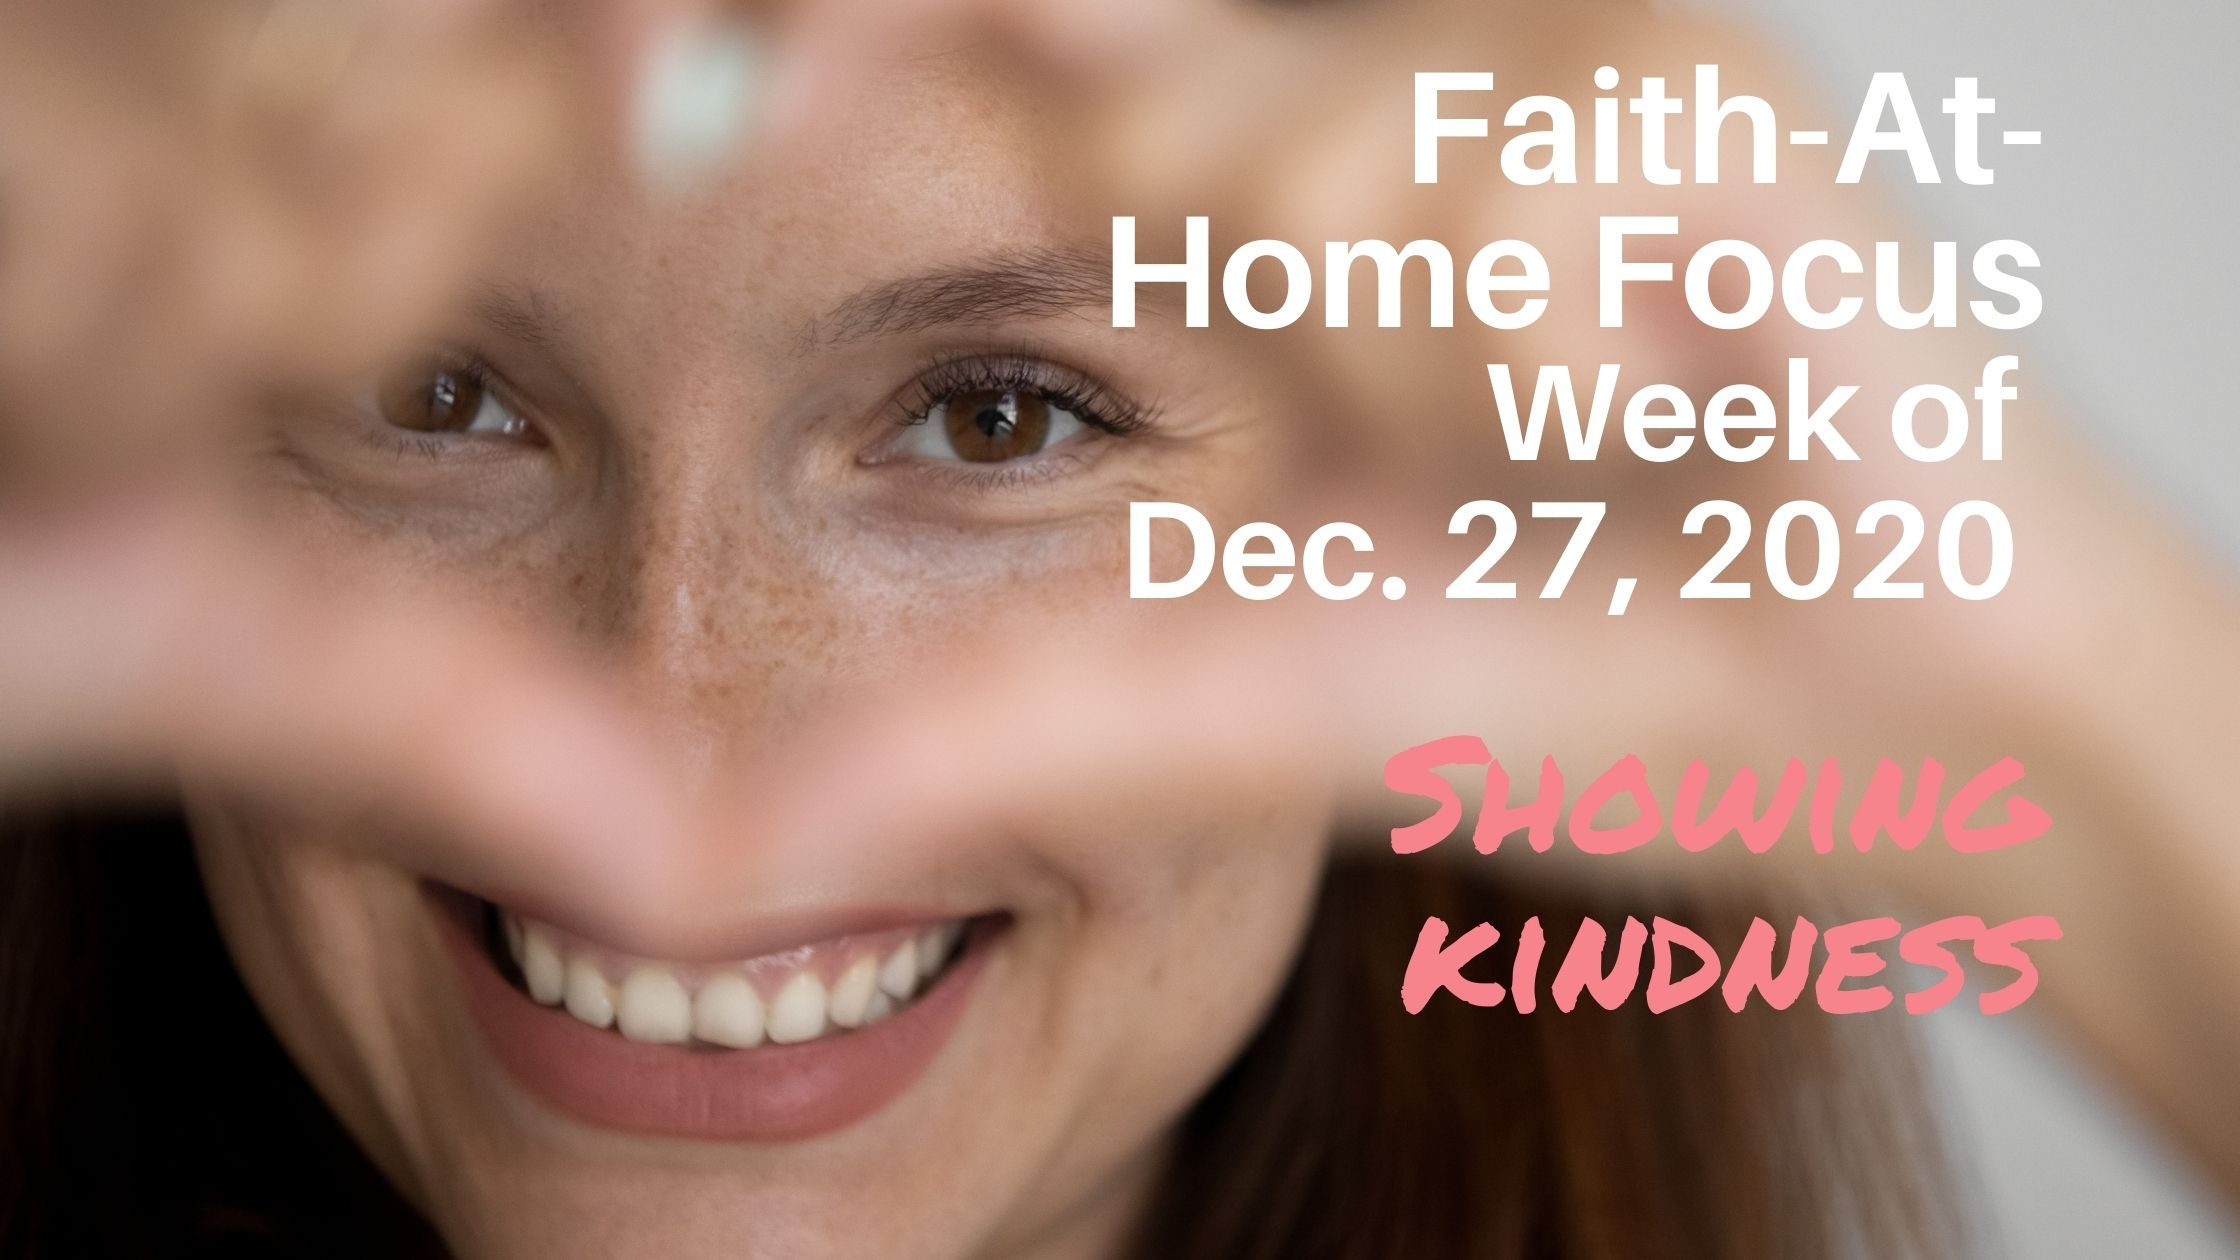 Showing kindness - Faith-At-Home (December 27th)